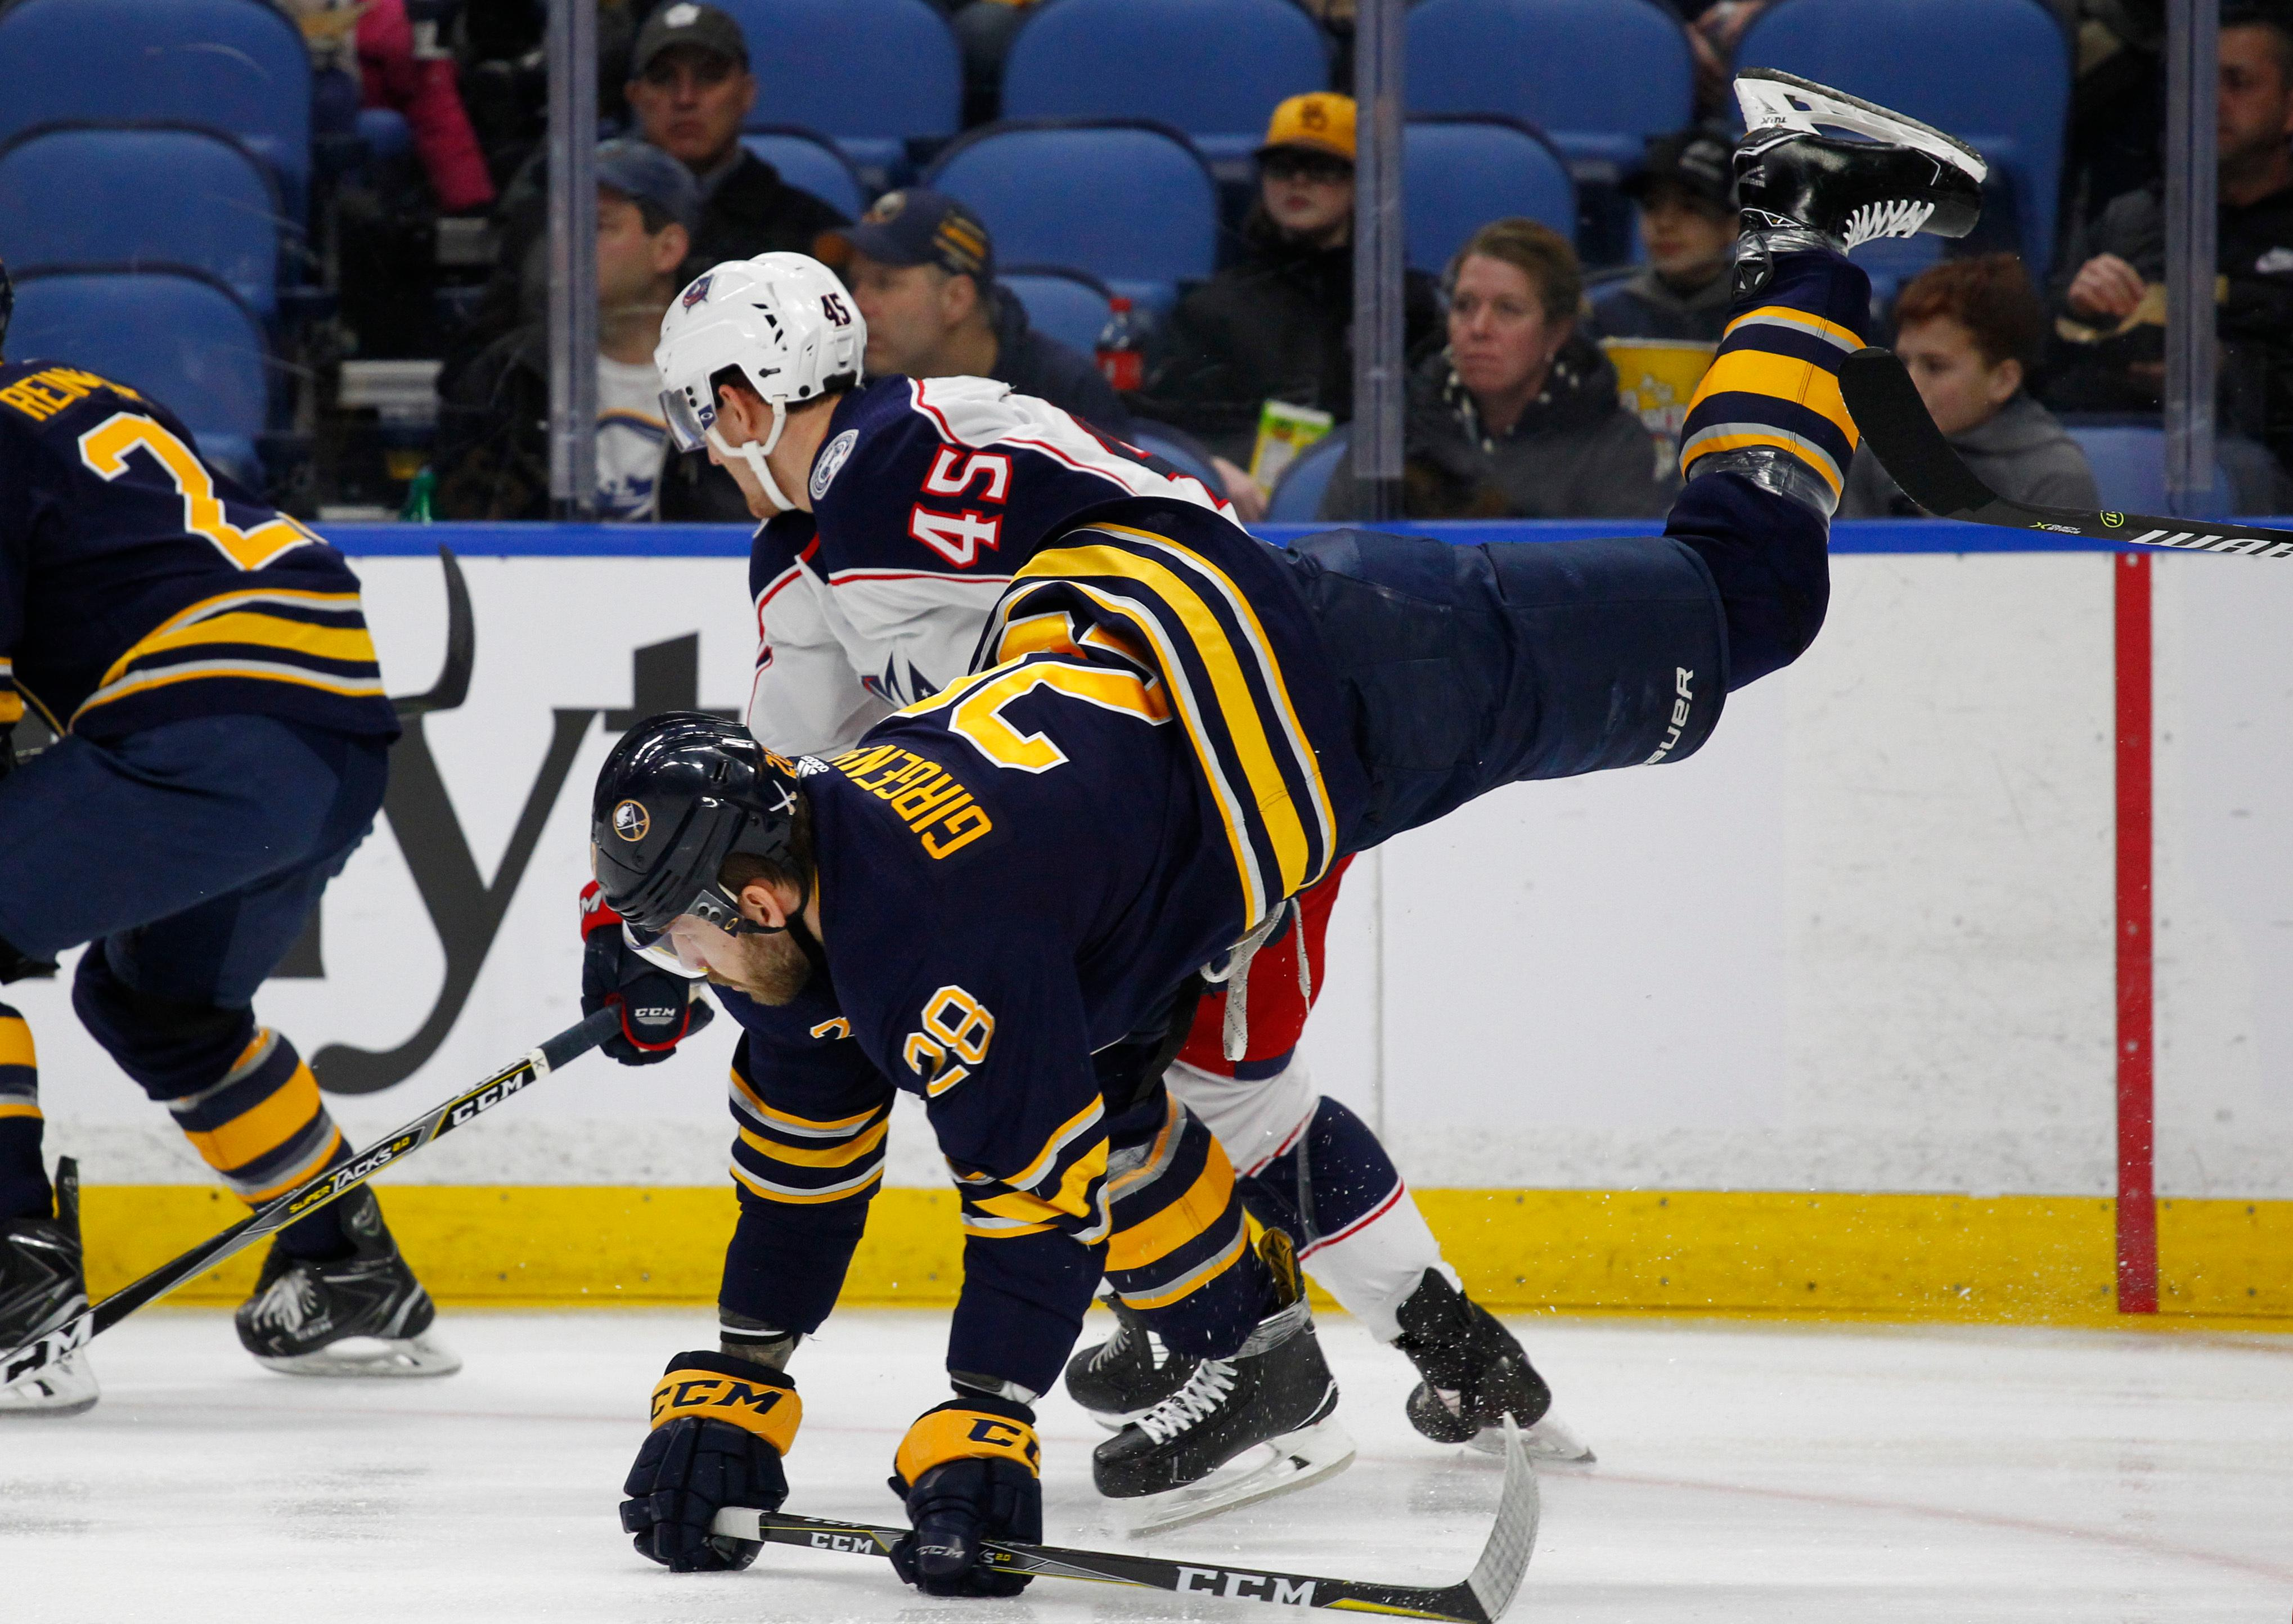 Buffalo Sabres forward Zemgus Girgensons (28) is tripped by Columbus Blue Jackets forward Lukas Sedlak (45) during the first period of an NHL hockey game Thursday, Jan. 11, 2018, in Buffalo, N.Y. (AP Photo/Jeffrey T. Barnes)